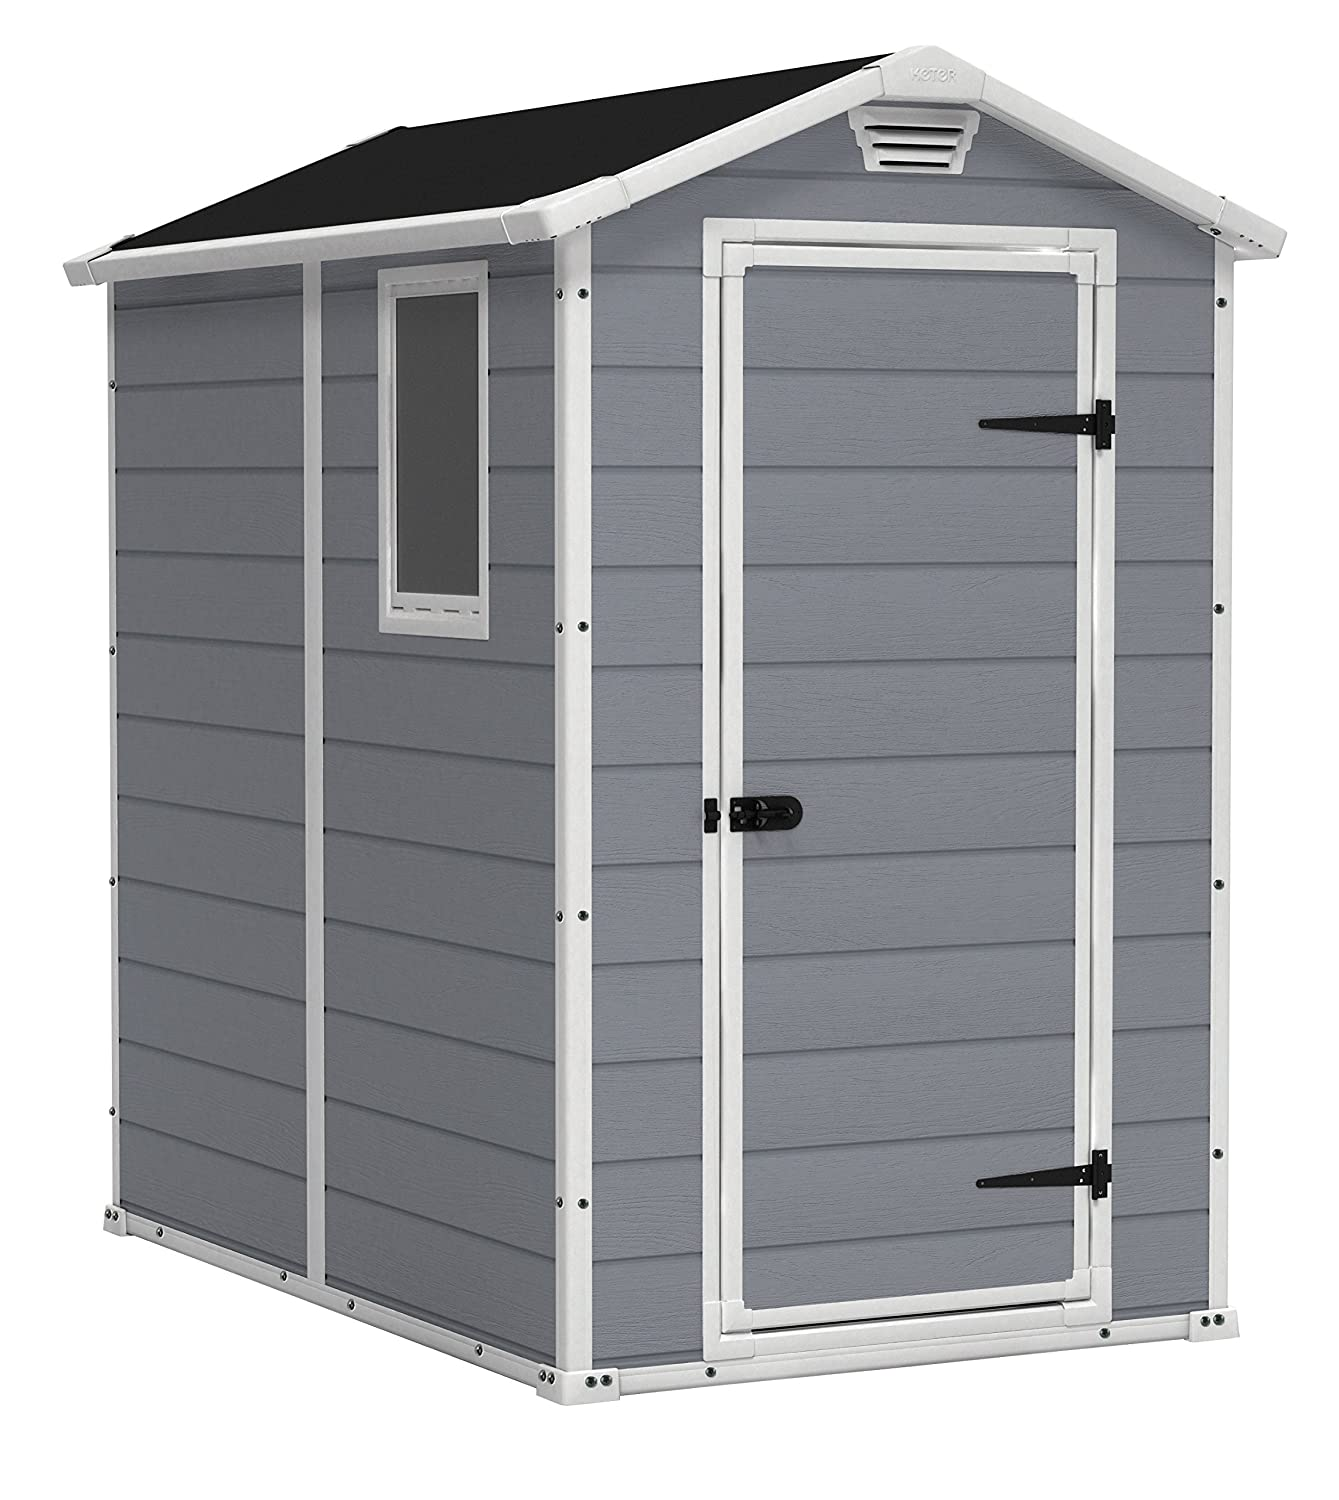 amazoncom keter manor large 4 x 6 ft resin outdoor backyard garden storage shed garden outdoor